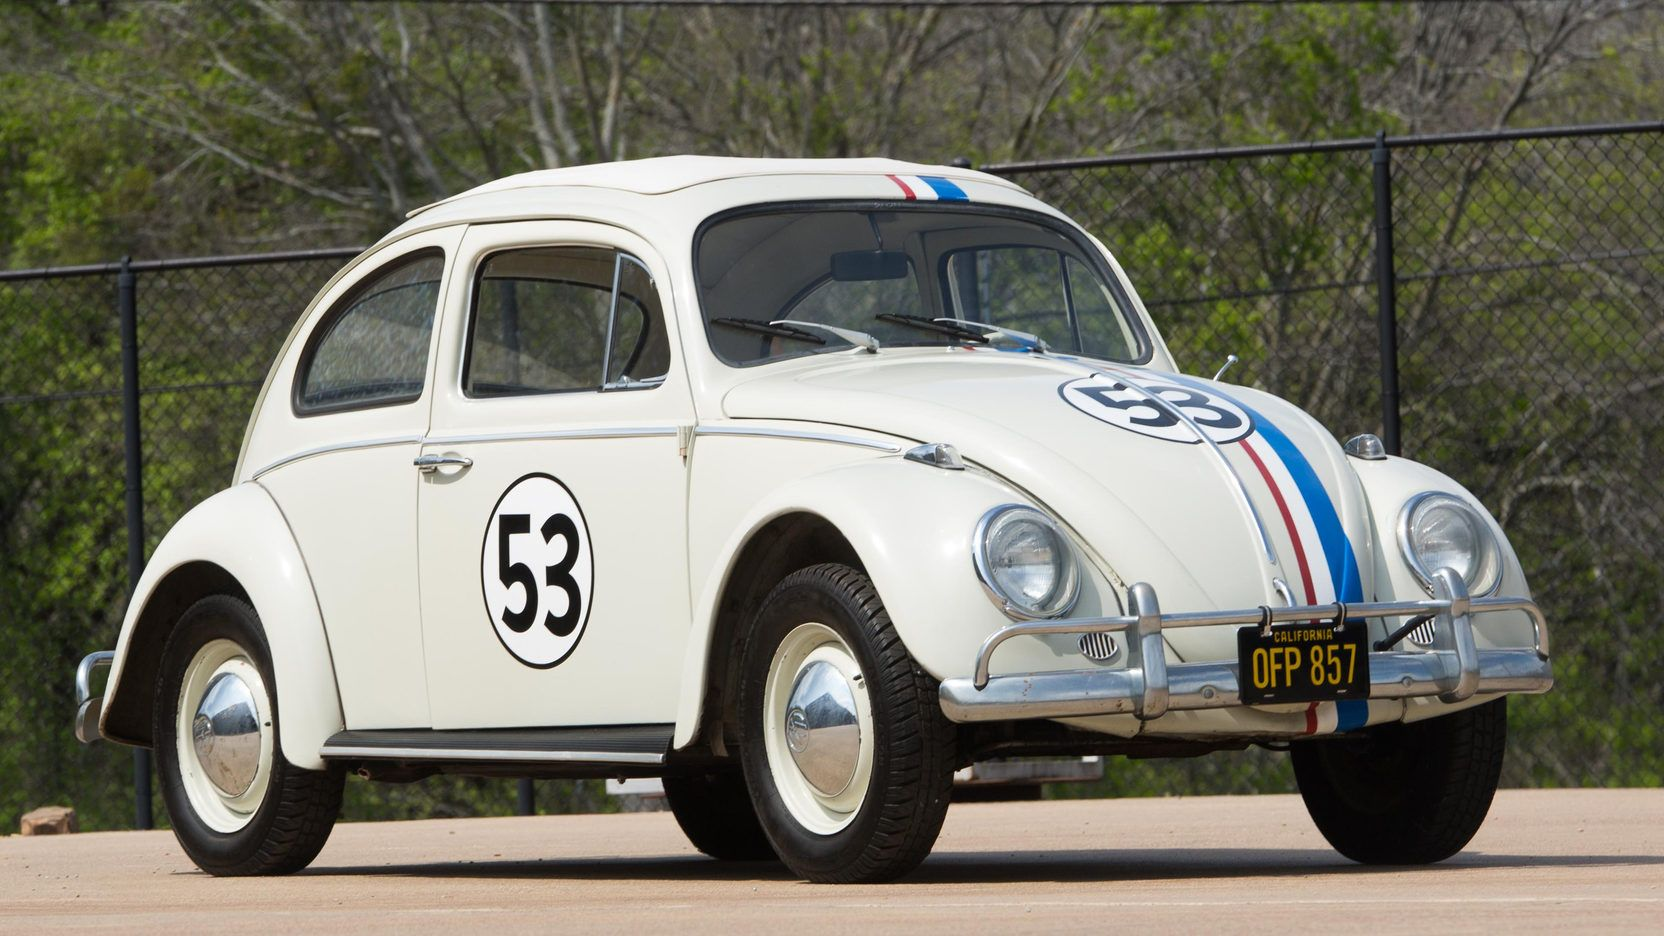 The history Volkswagen Beetle as it turns 80 years old | Hagerty Articles